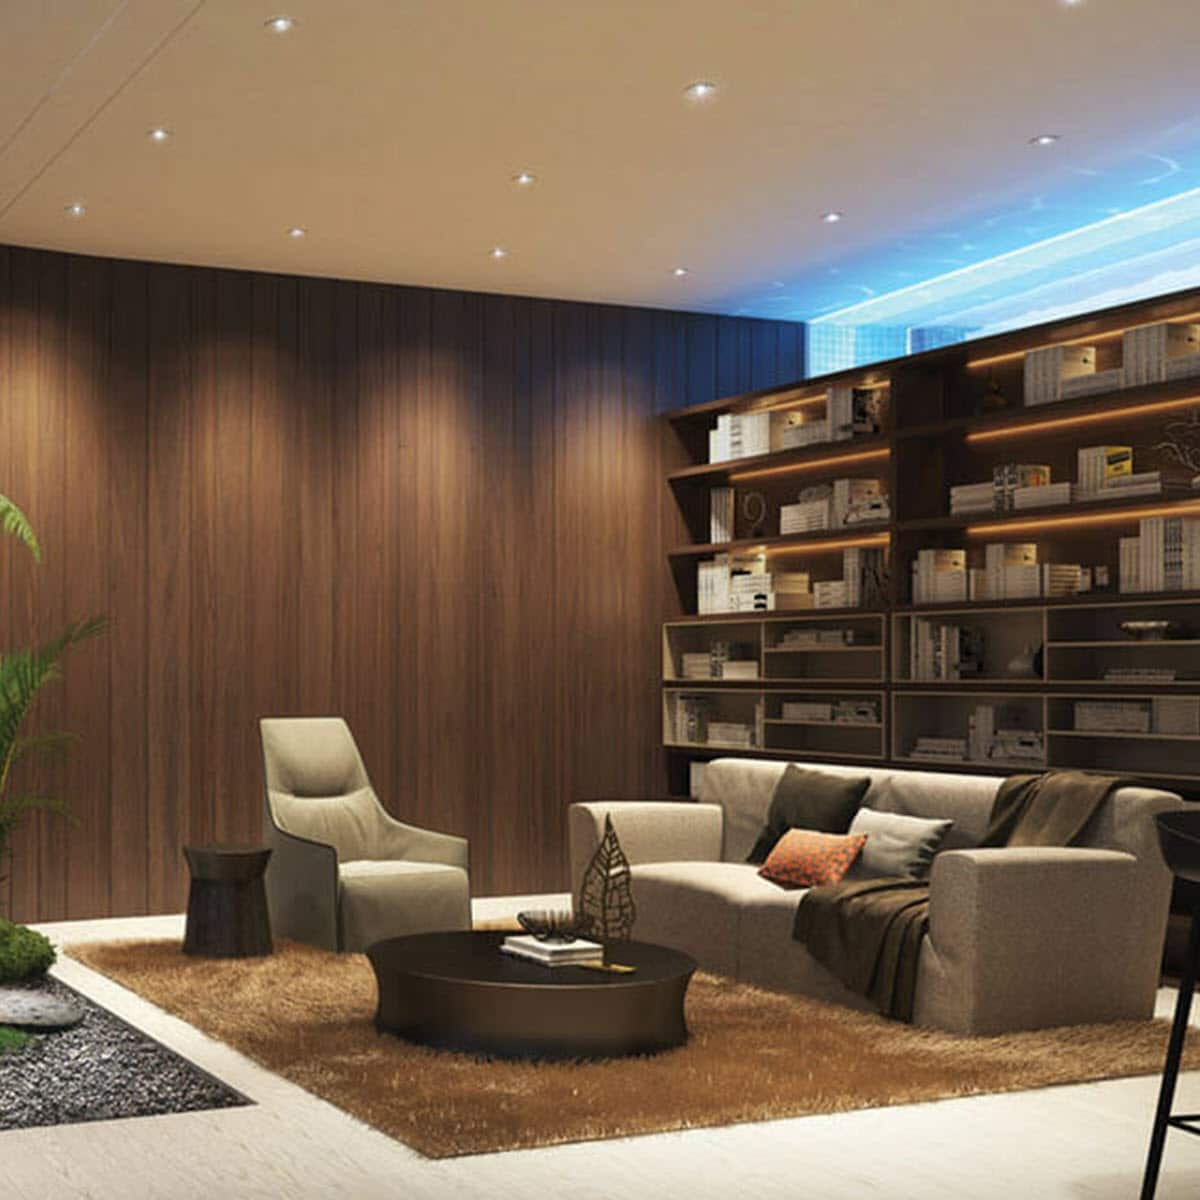 Feature Wall Design - Wood Feature Wall